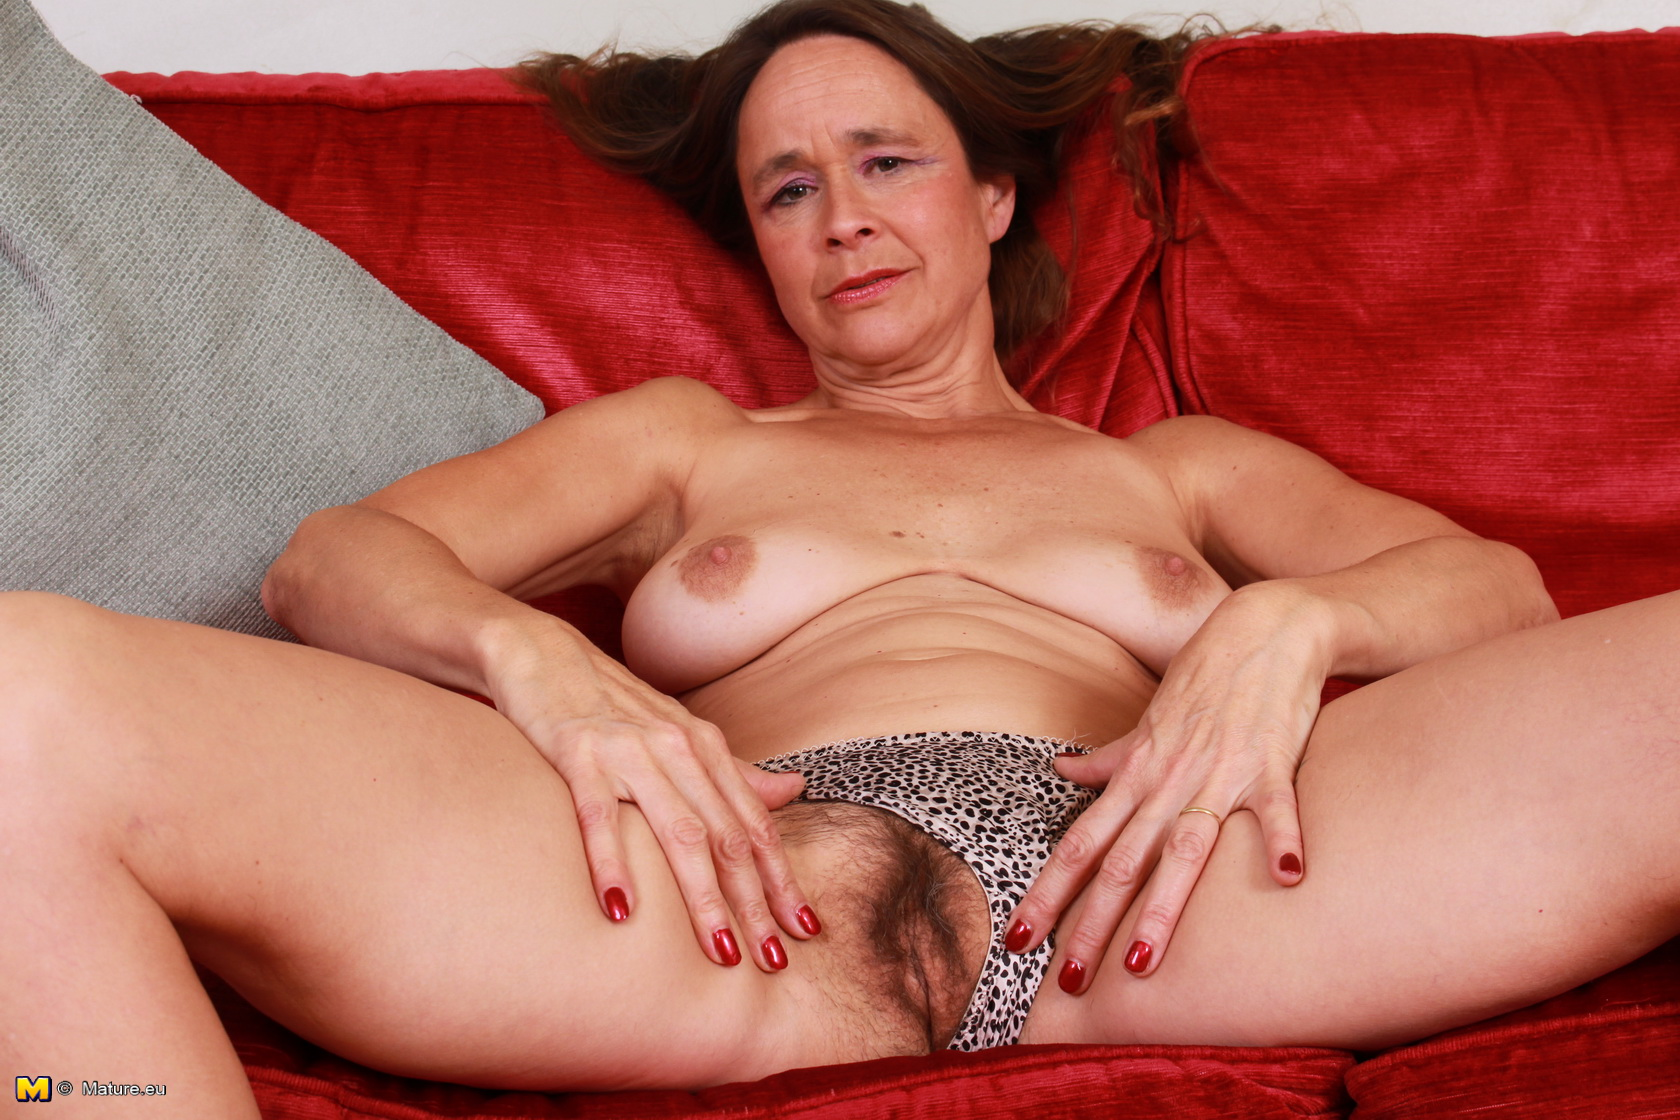 Unshaved British housewife frolicking with herself